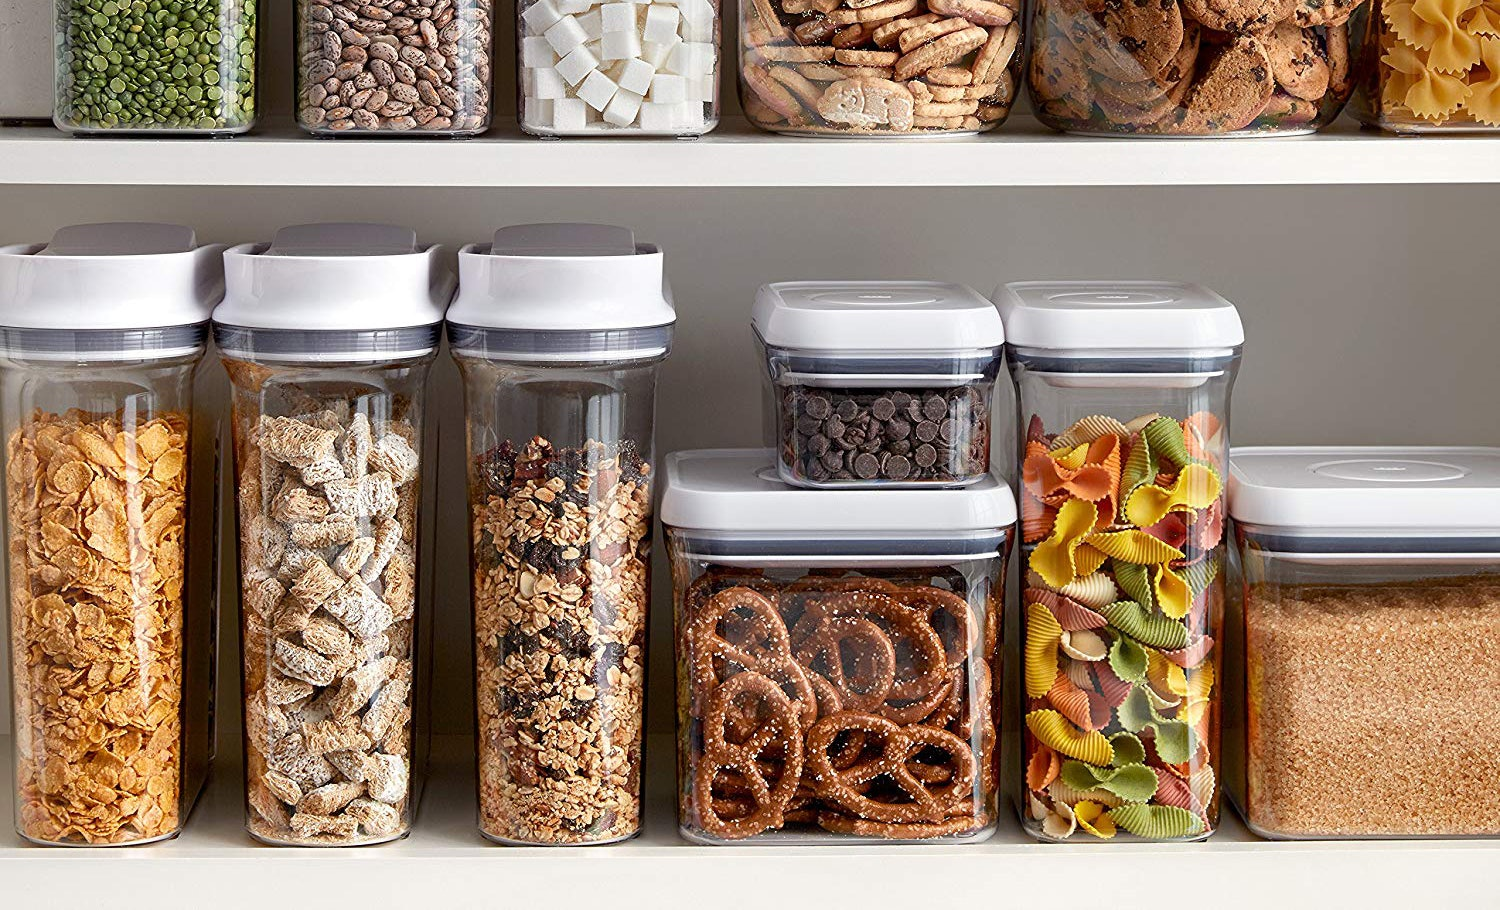 The 5 best dry food storage containers